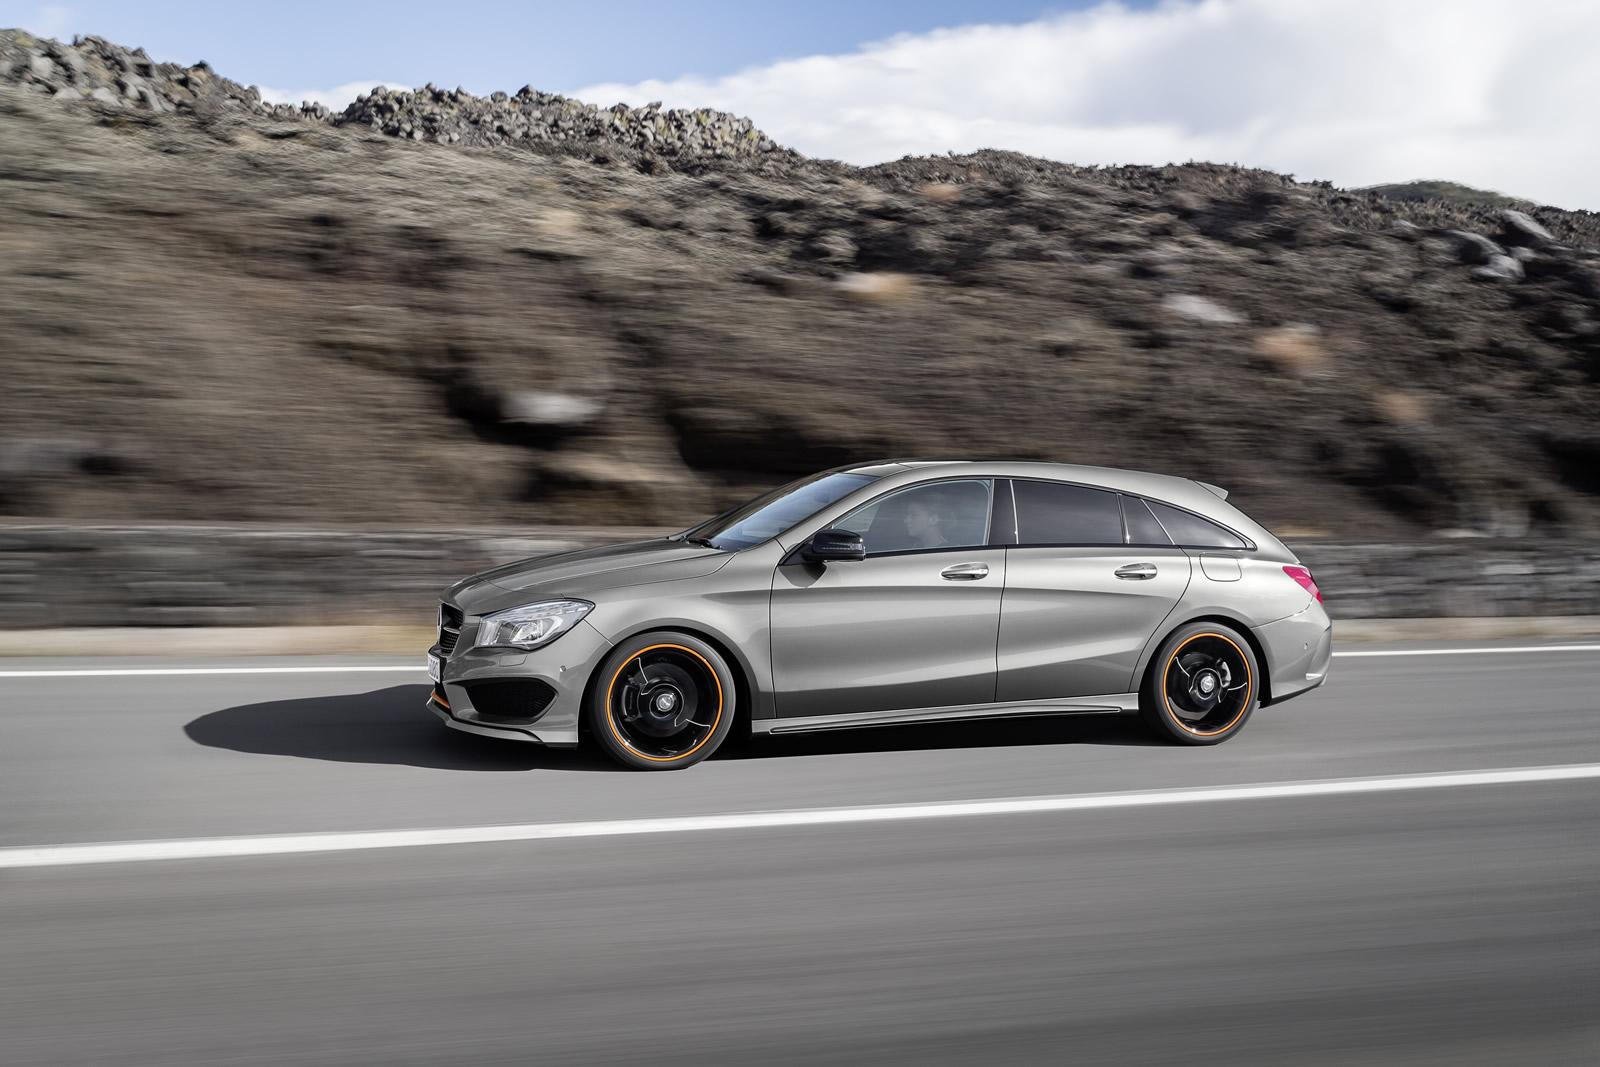 CLA 45 AMG Shooting Brake